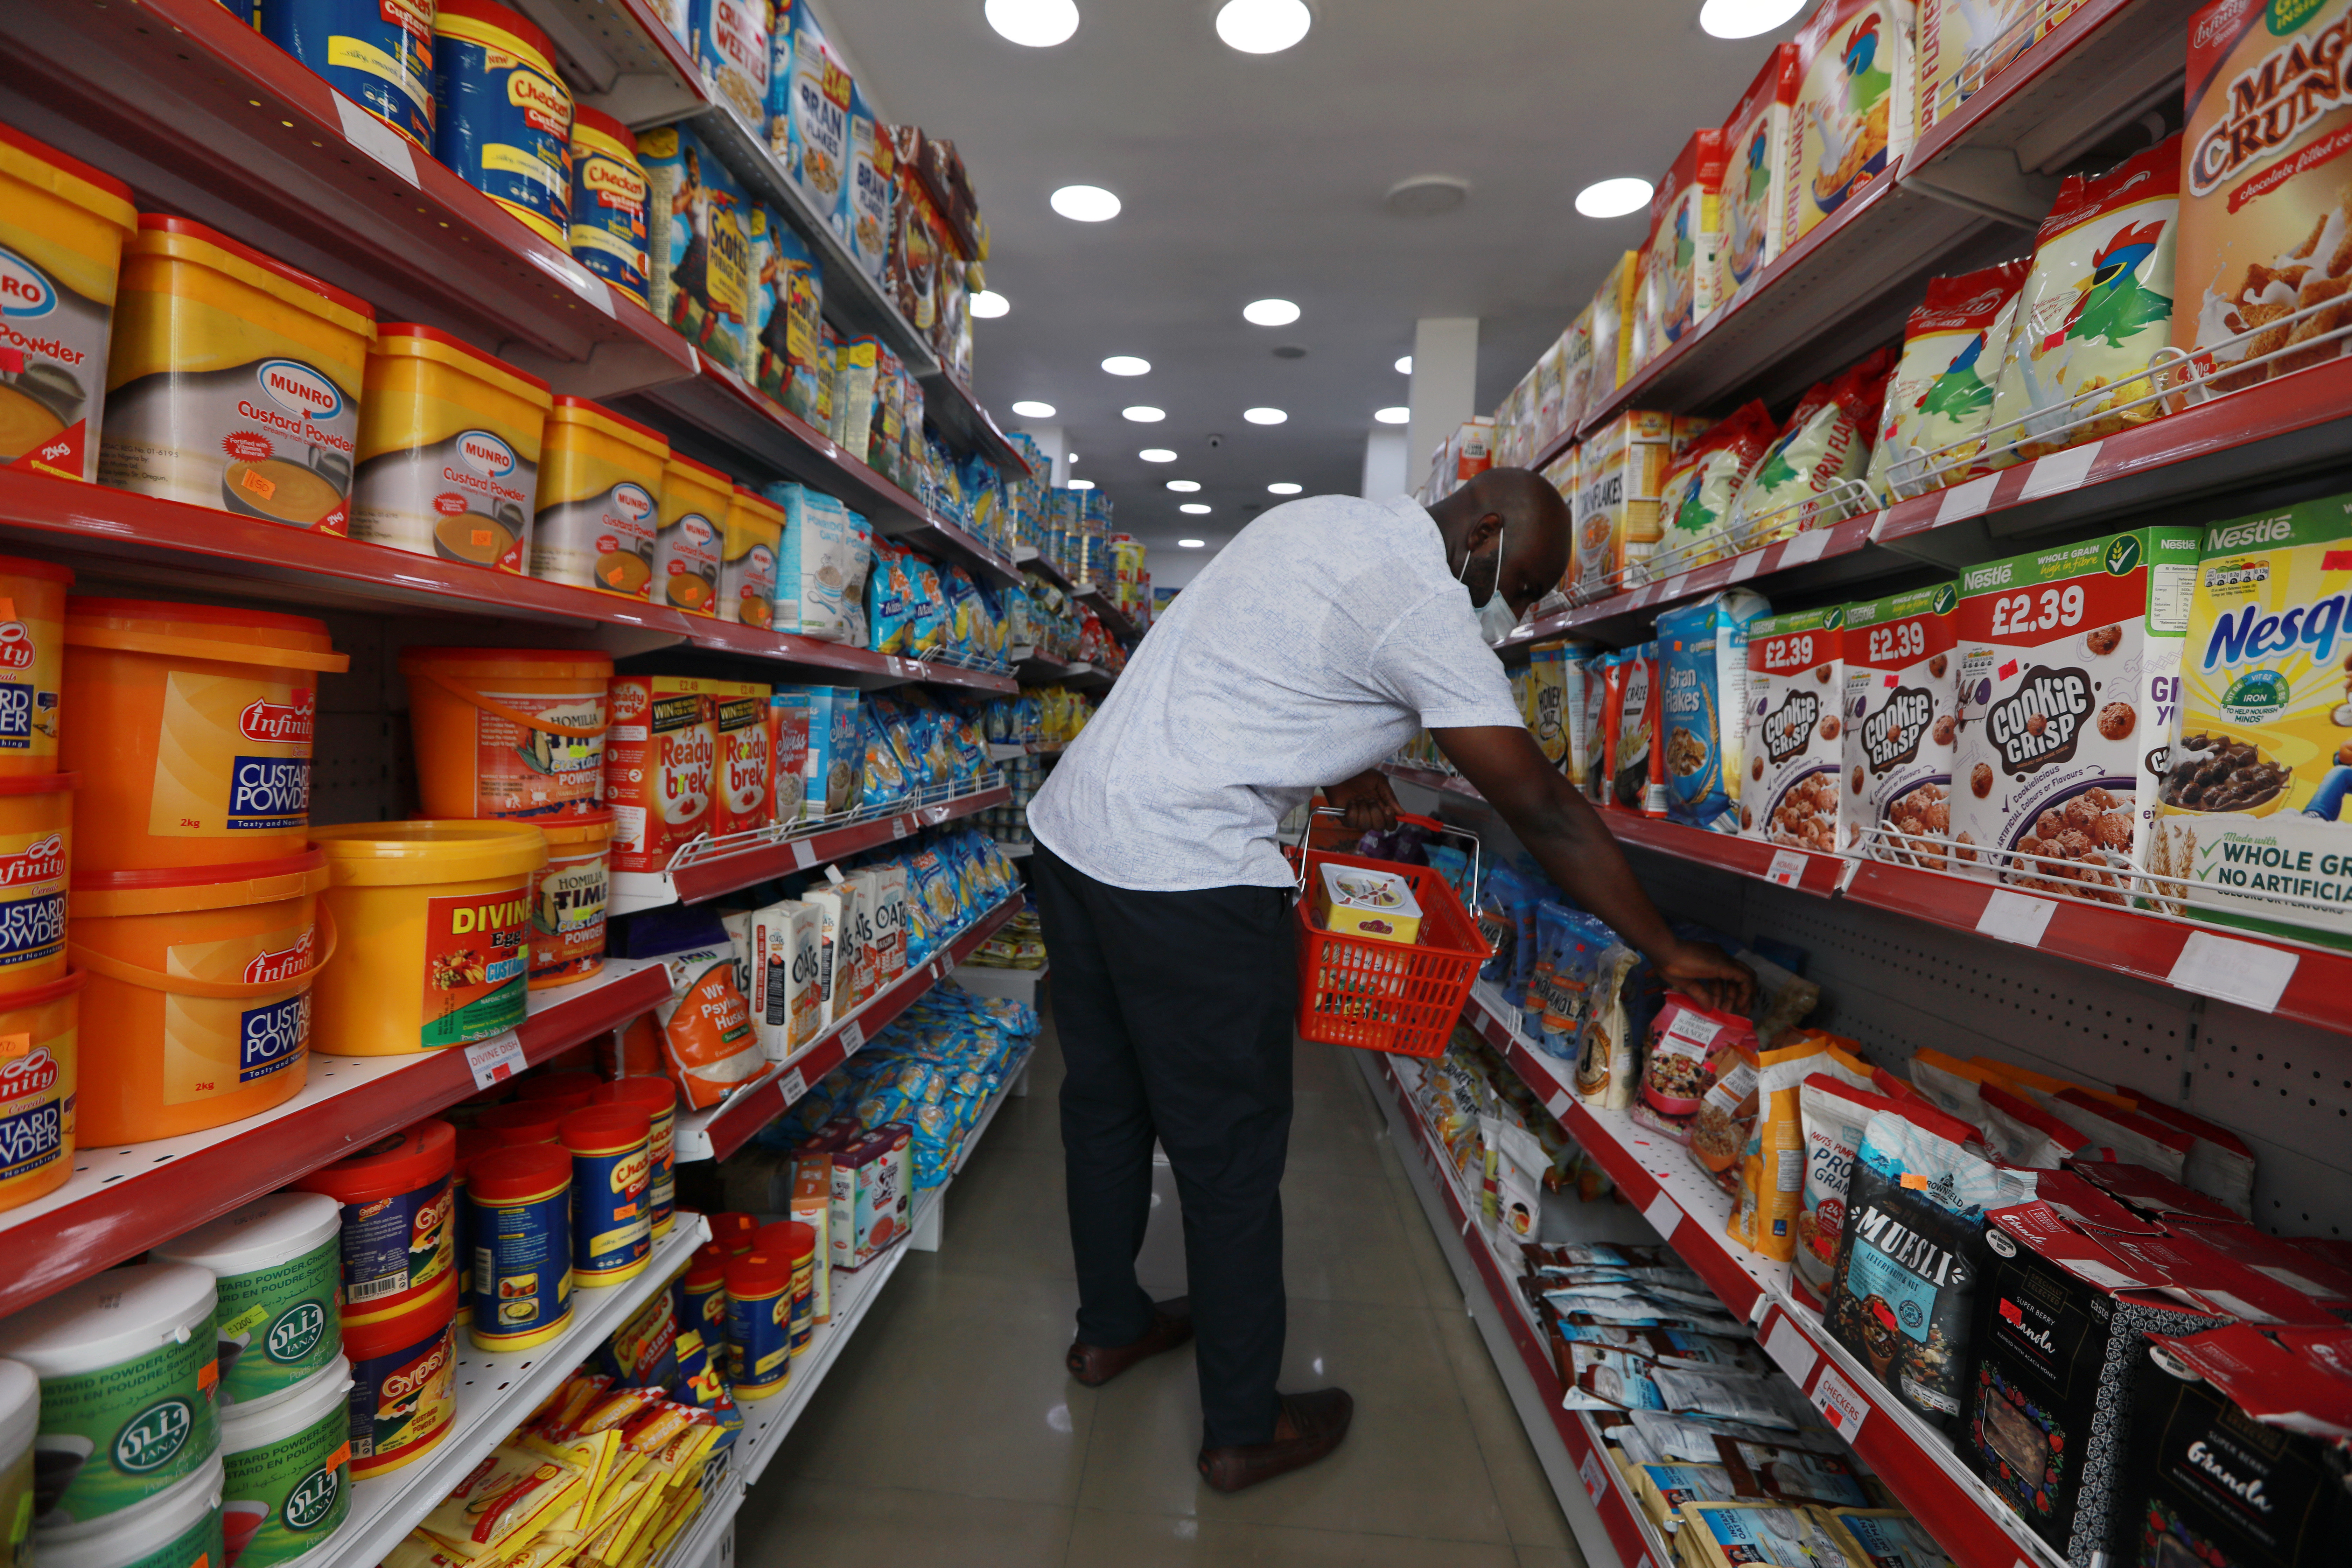 A man wears a protective mask as he shops for groceries at Bakan Gizo supermarket, amid the coronavirus disease (COVID-19) outbreak, in Abuja, Nigeria June 11, 2020. REUTERS/Afolabi Sotunde - RC237H9WH975